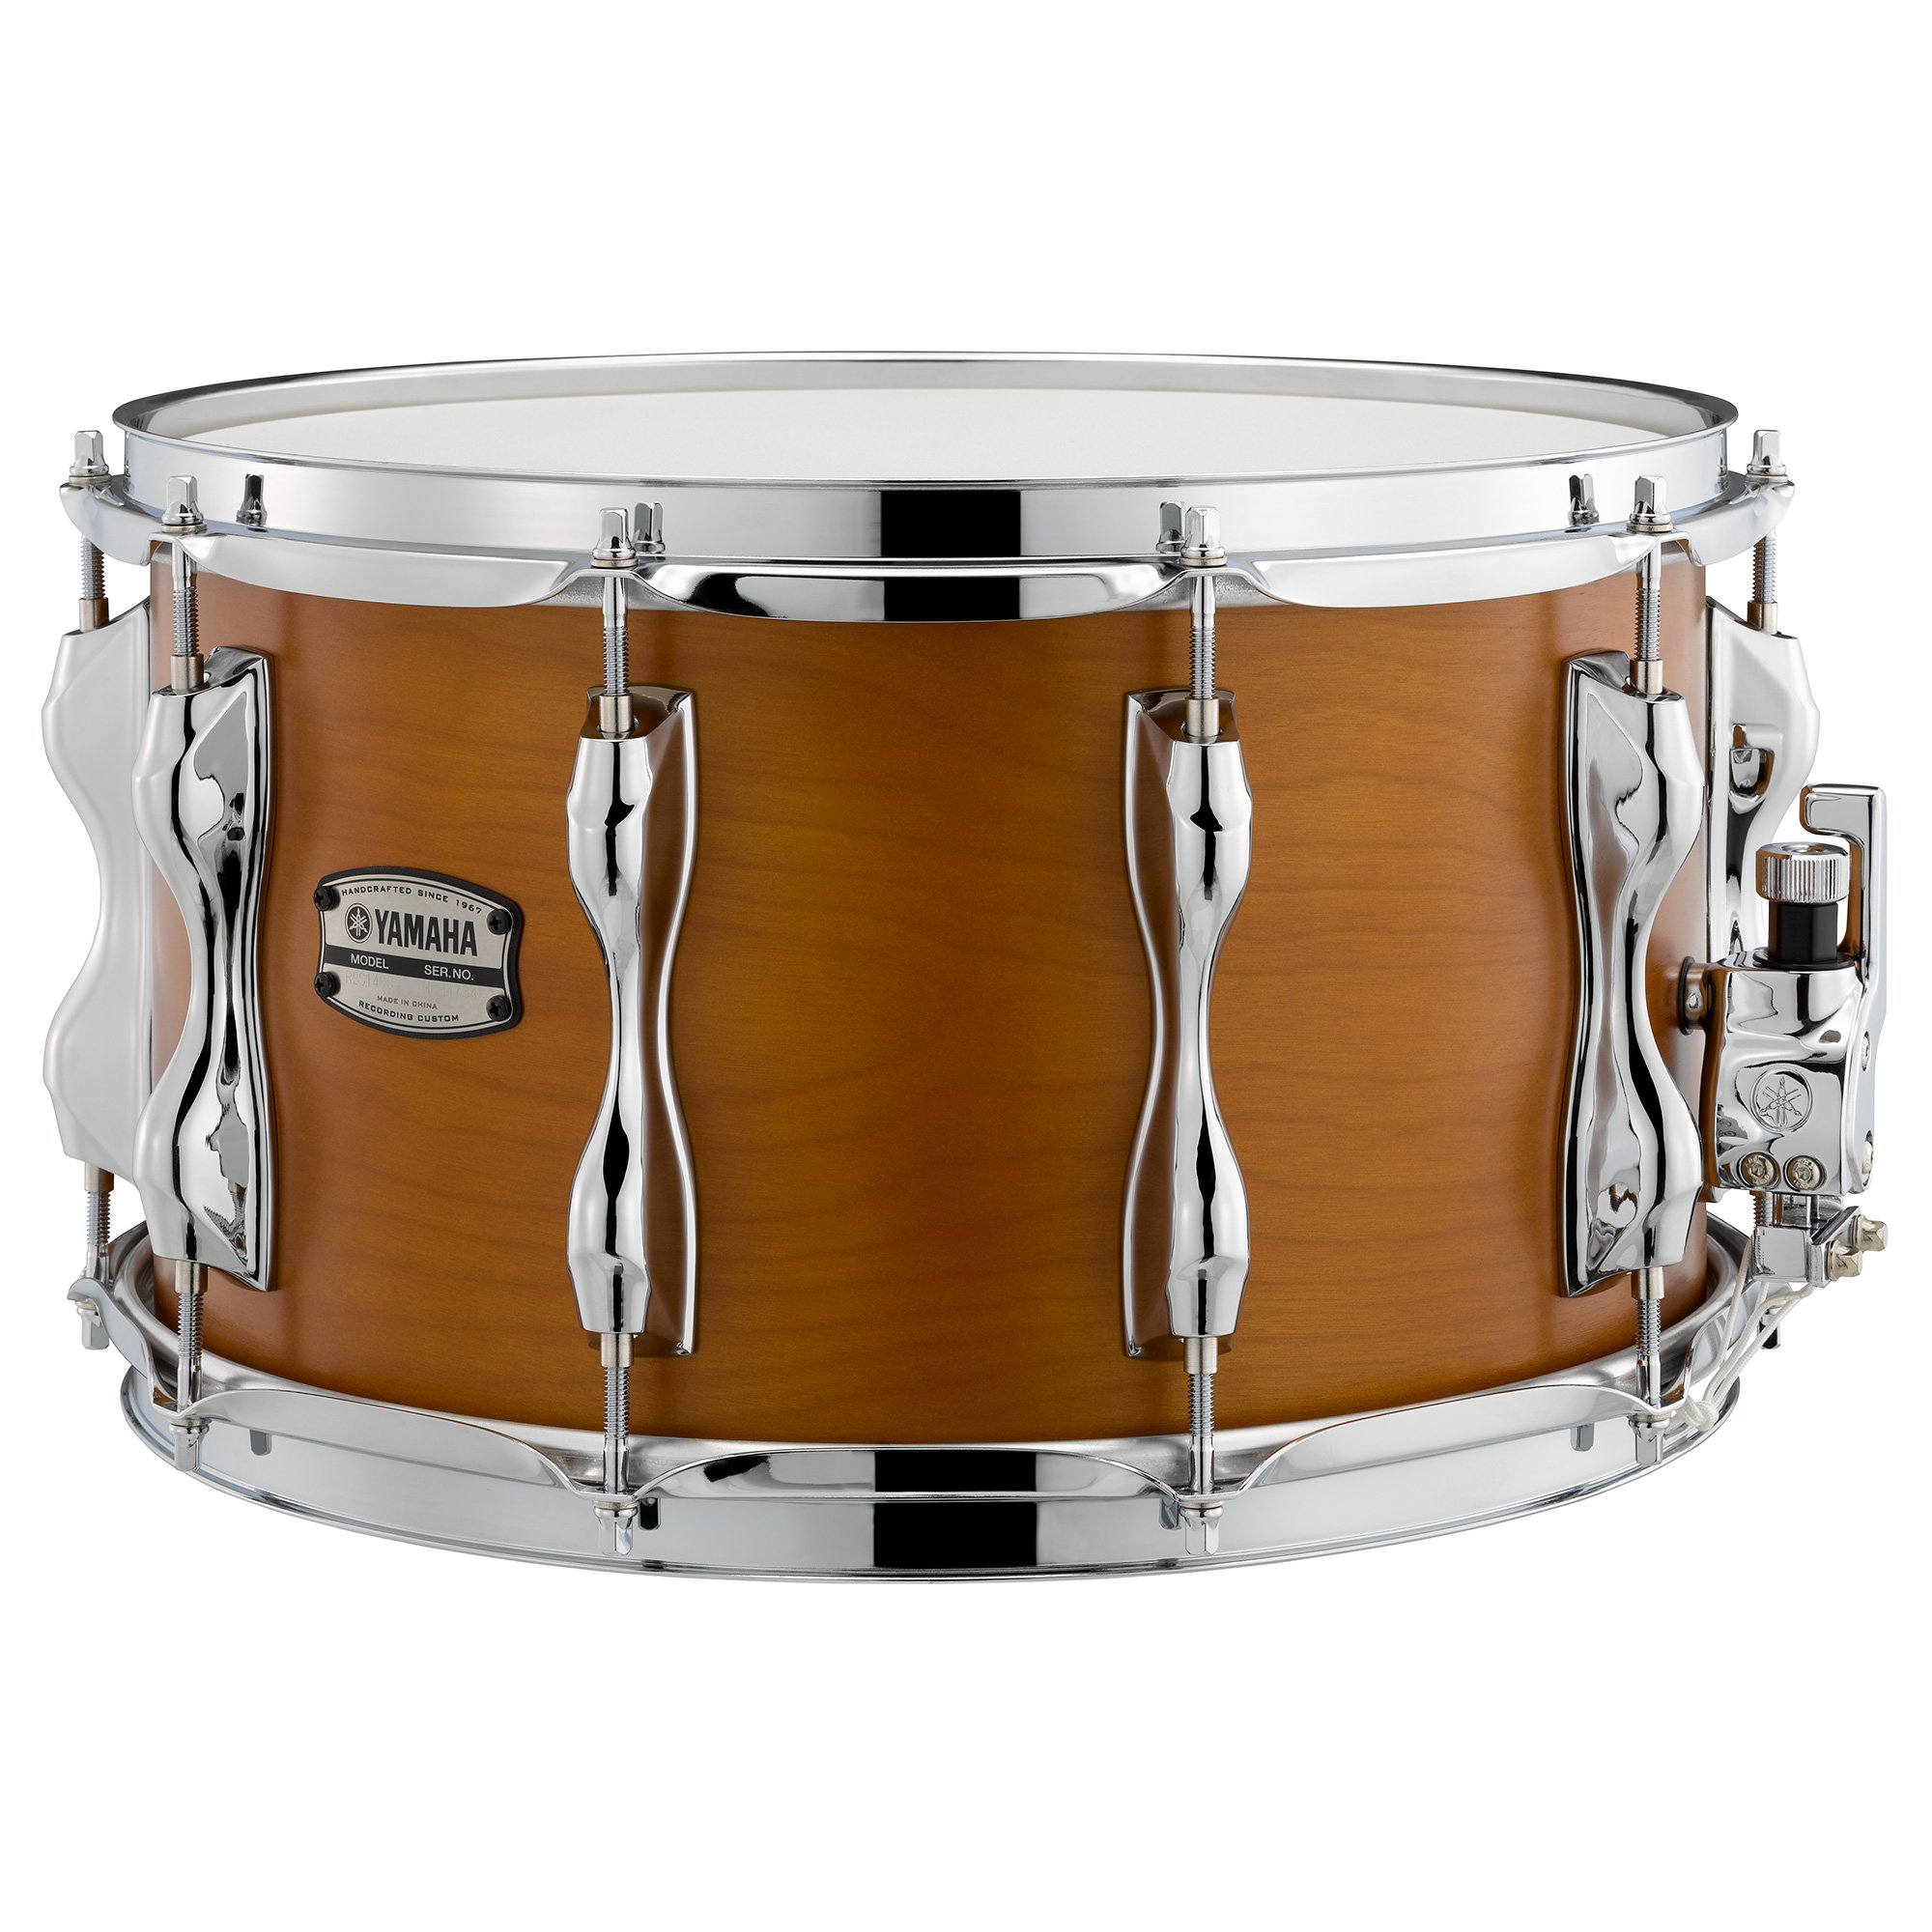 Yamaha RBS1480 Real Wood